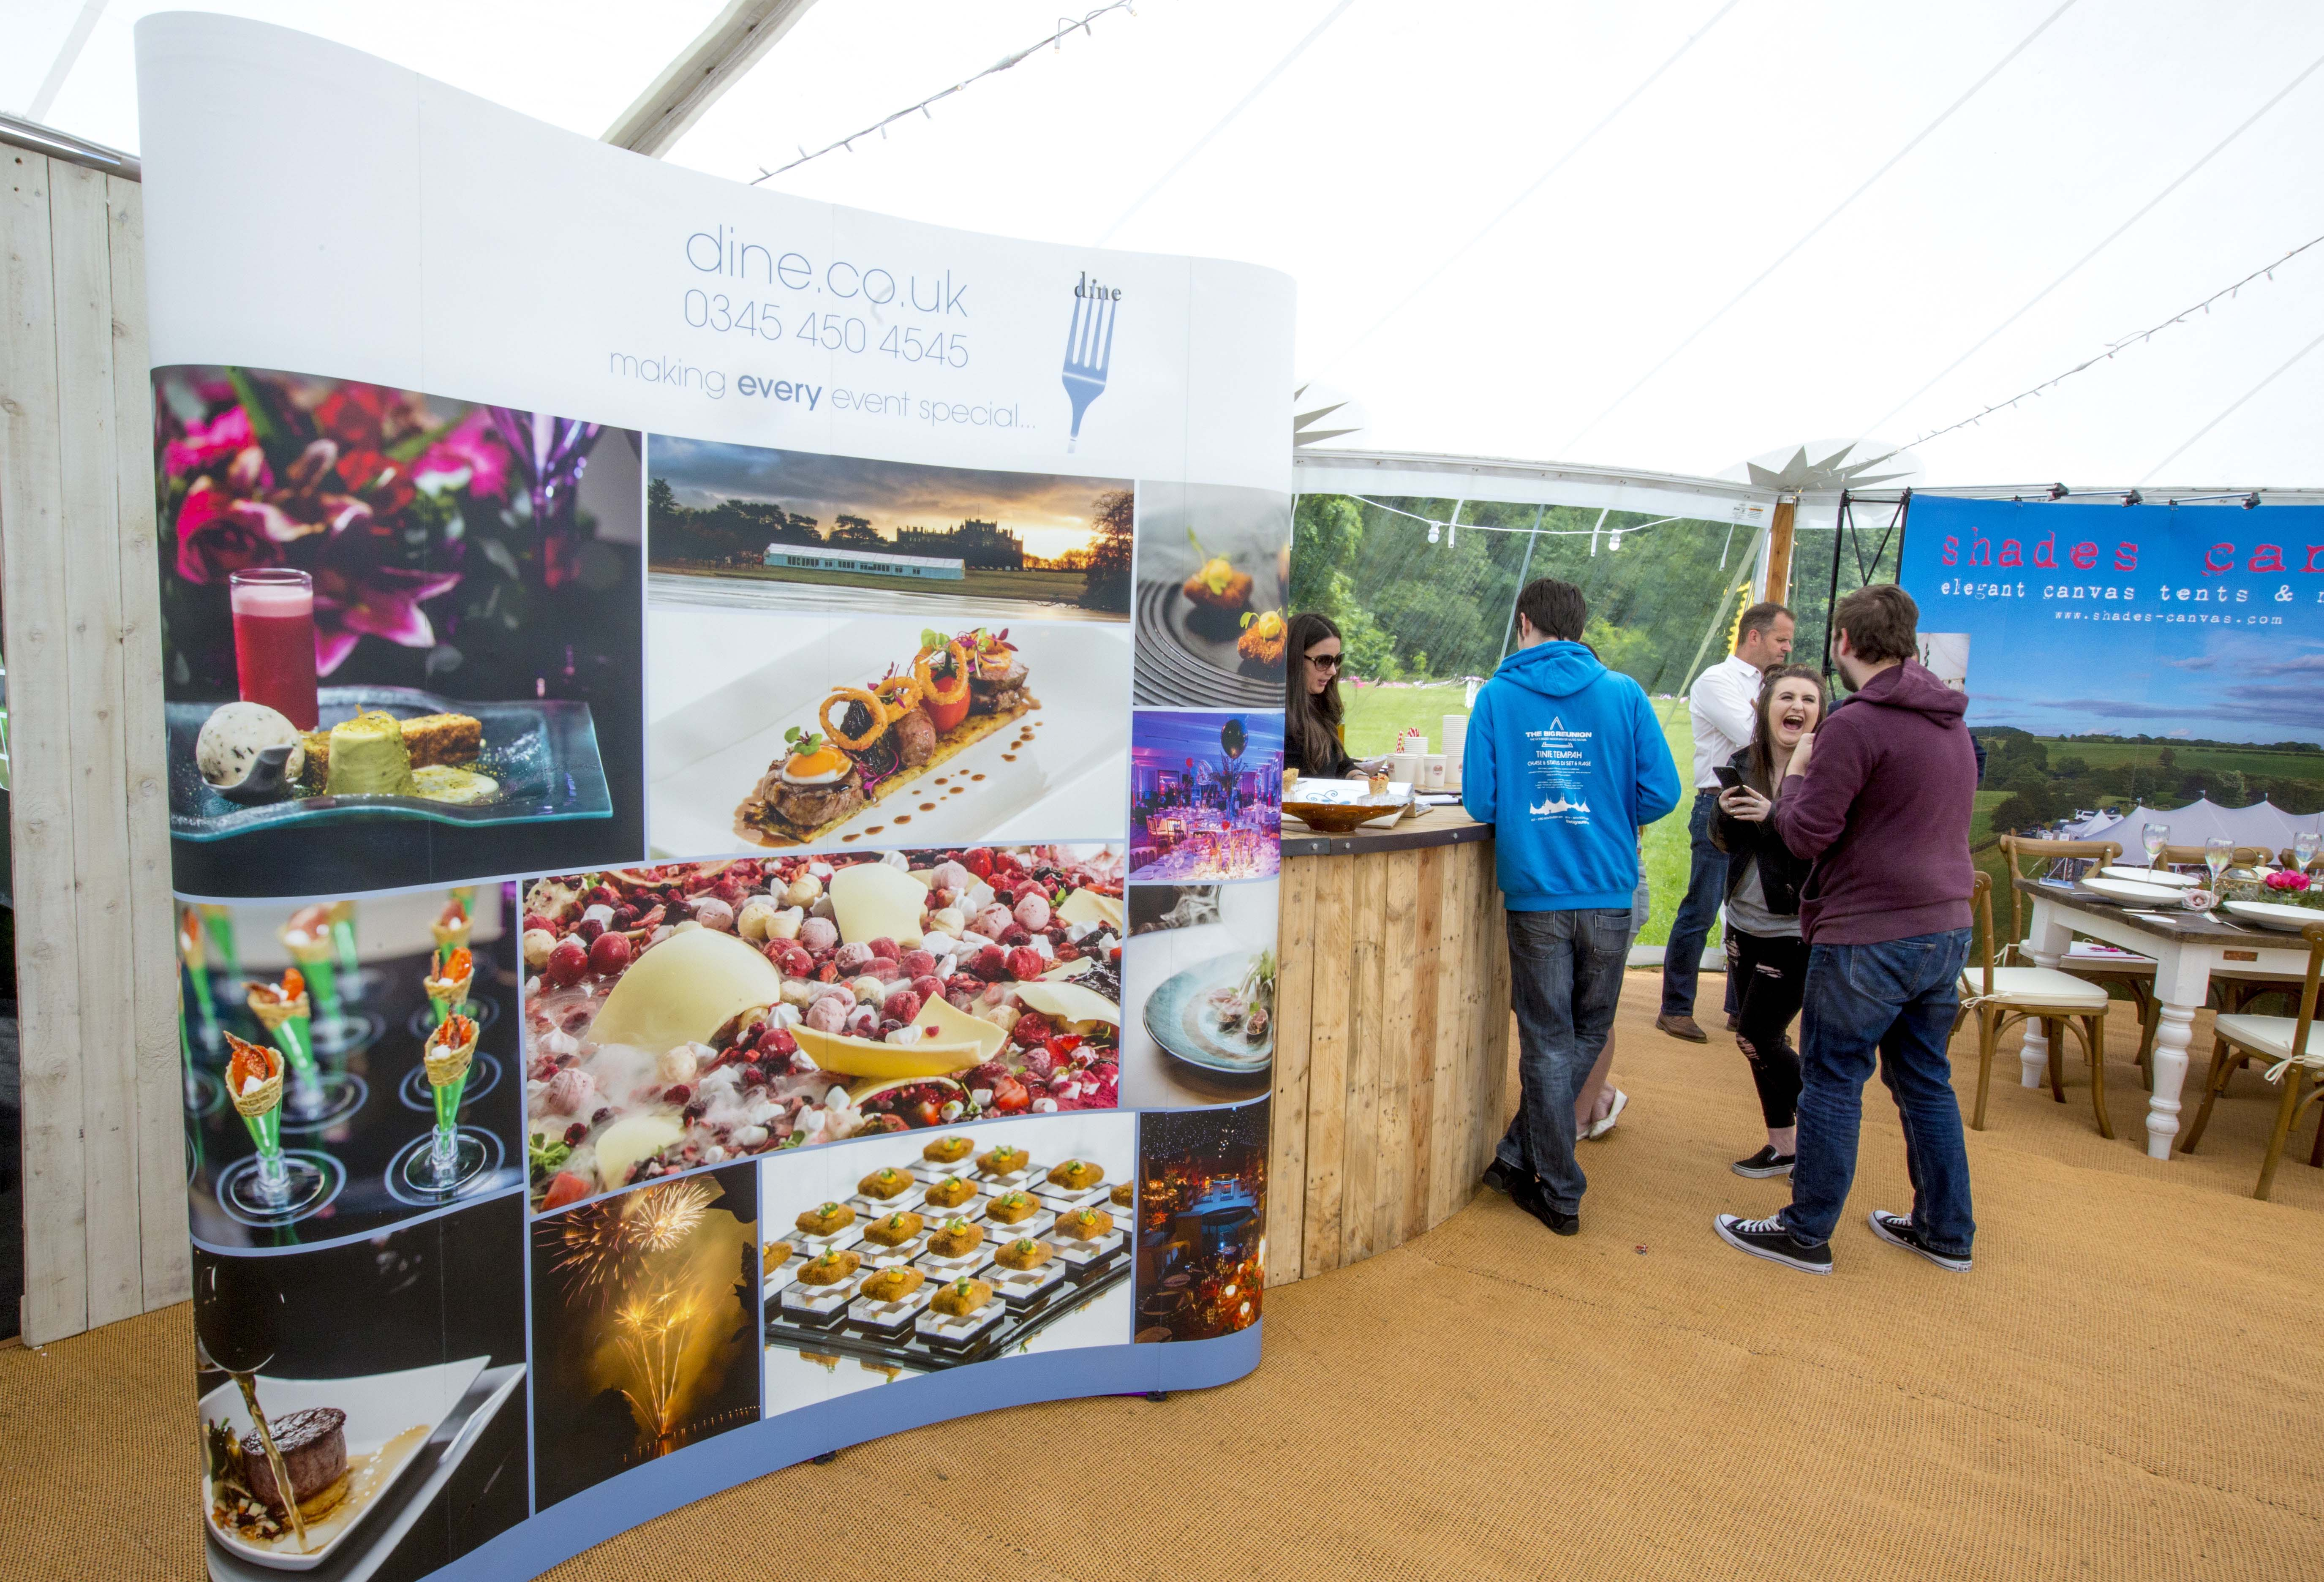 Dine catering & event management exhibition stand